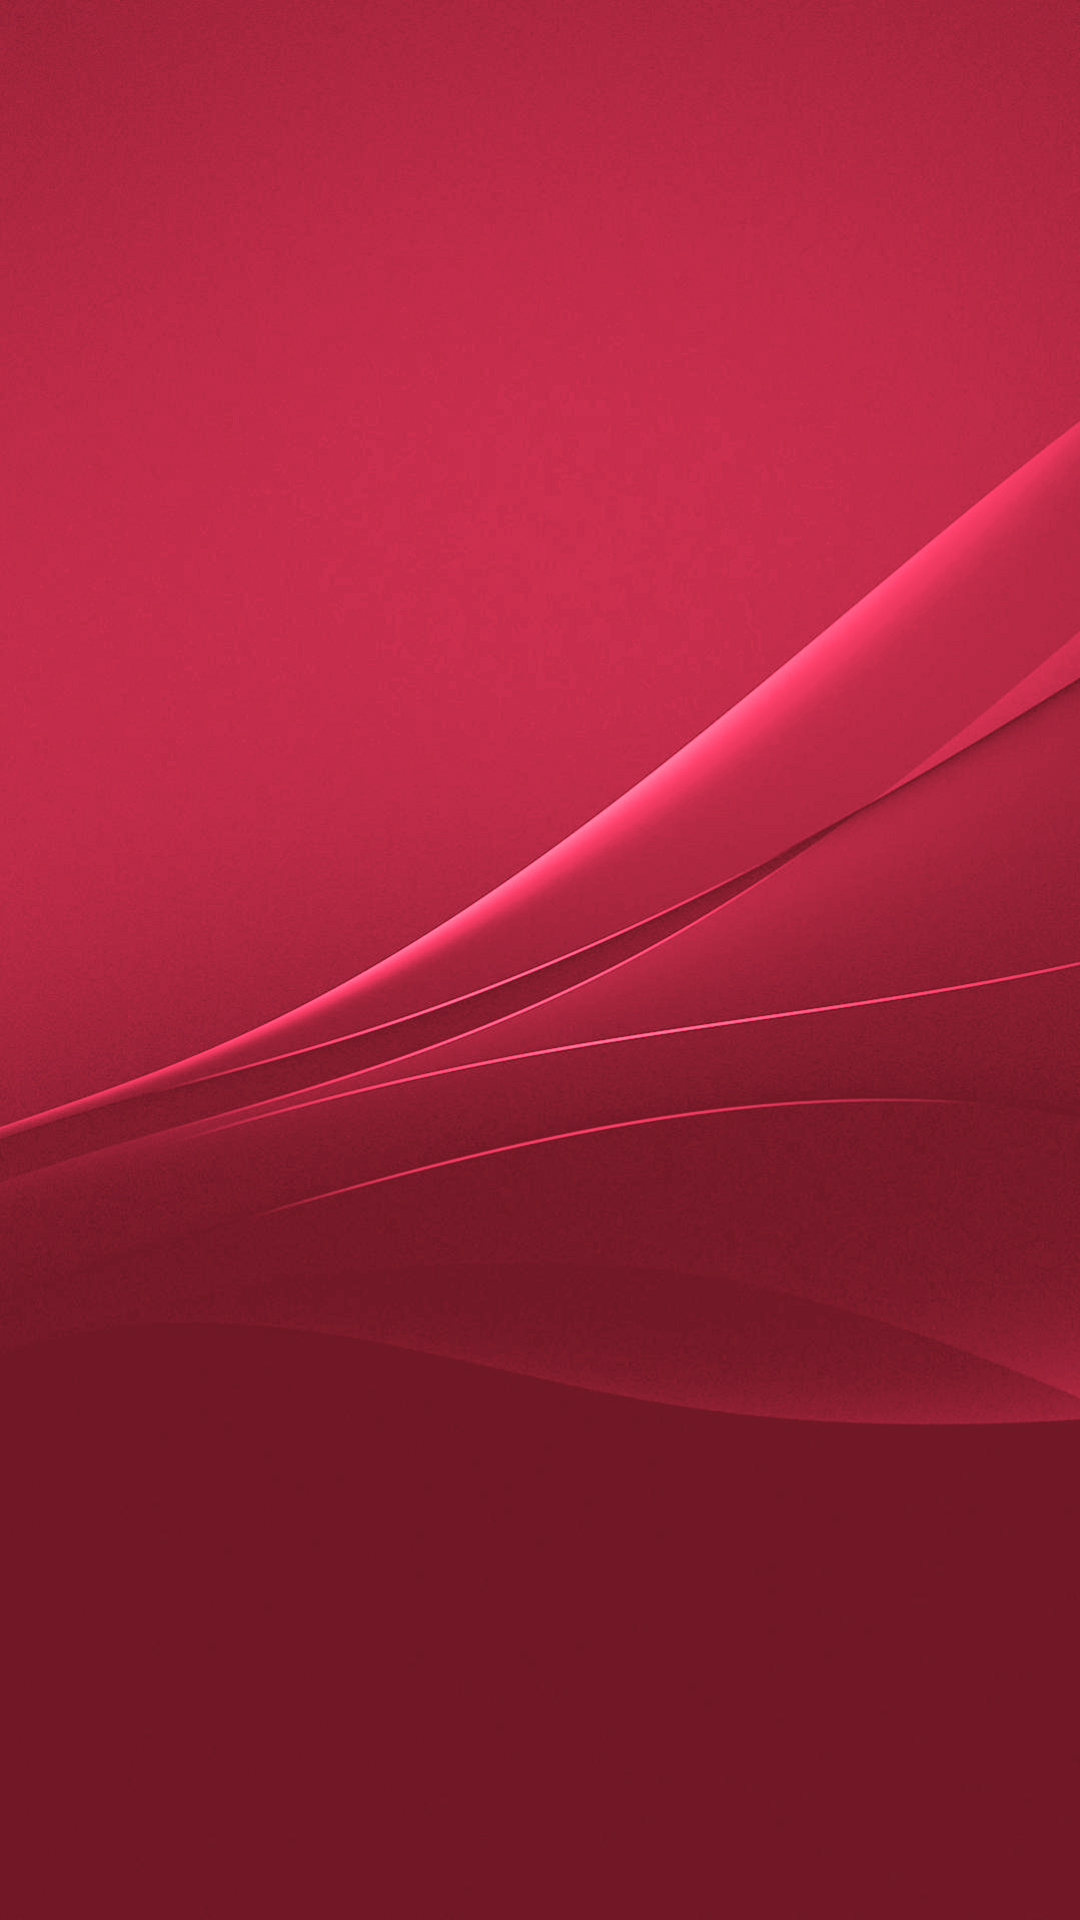 Pink xperia lollipop experience flow wallpaper gizmo for Wallpaper xperia home